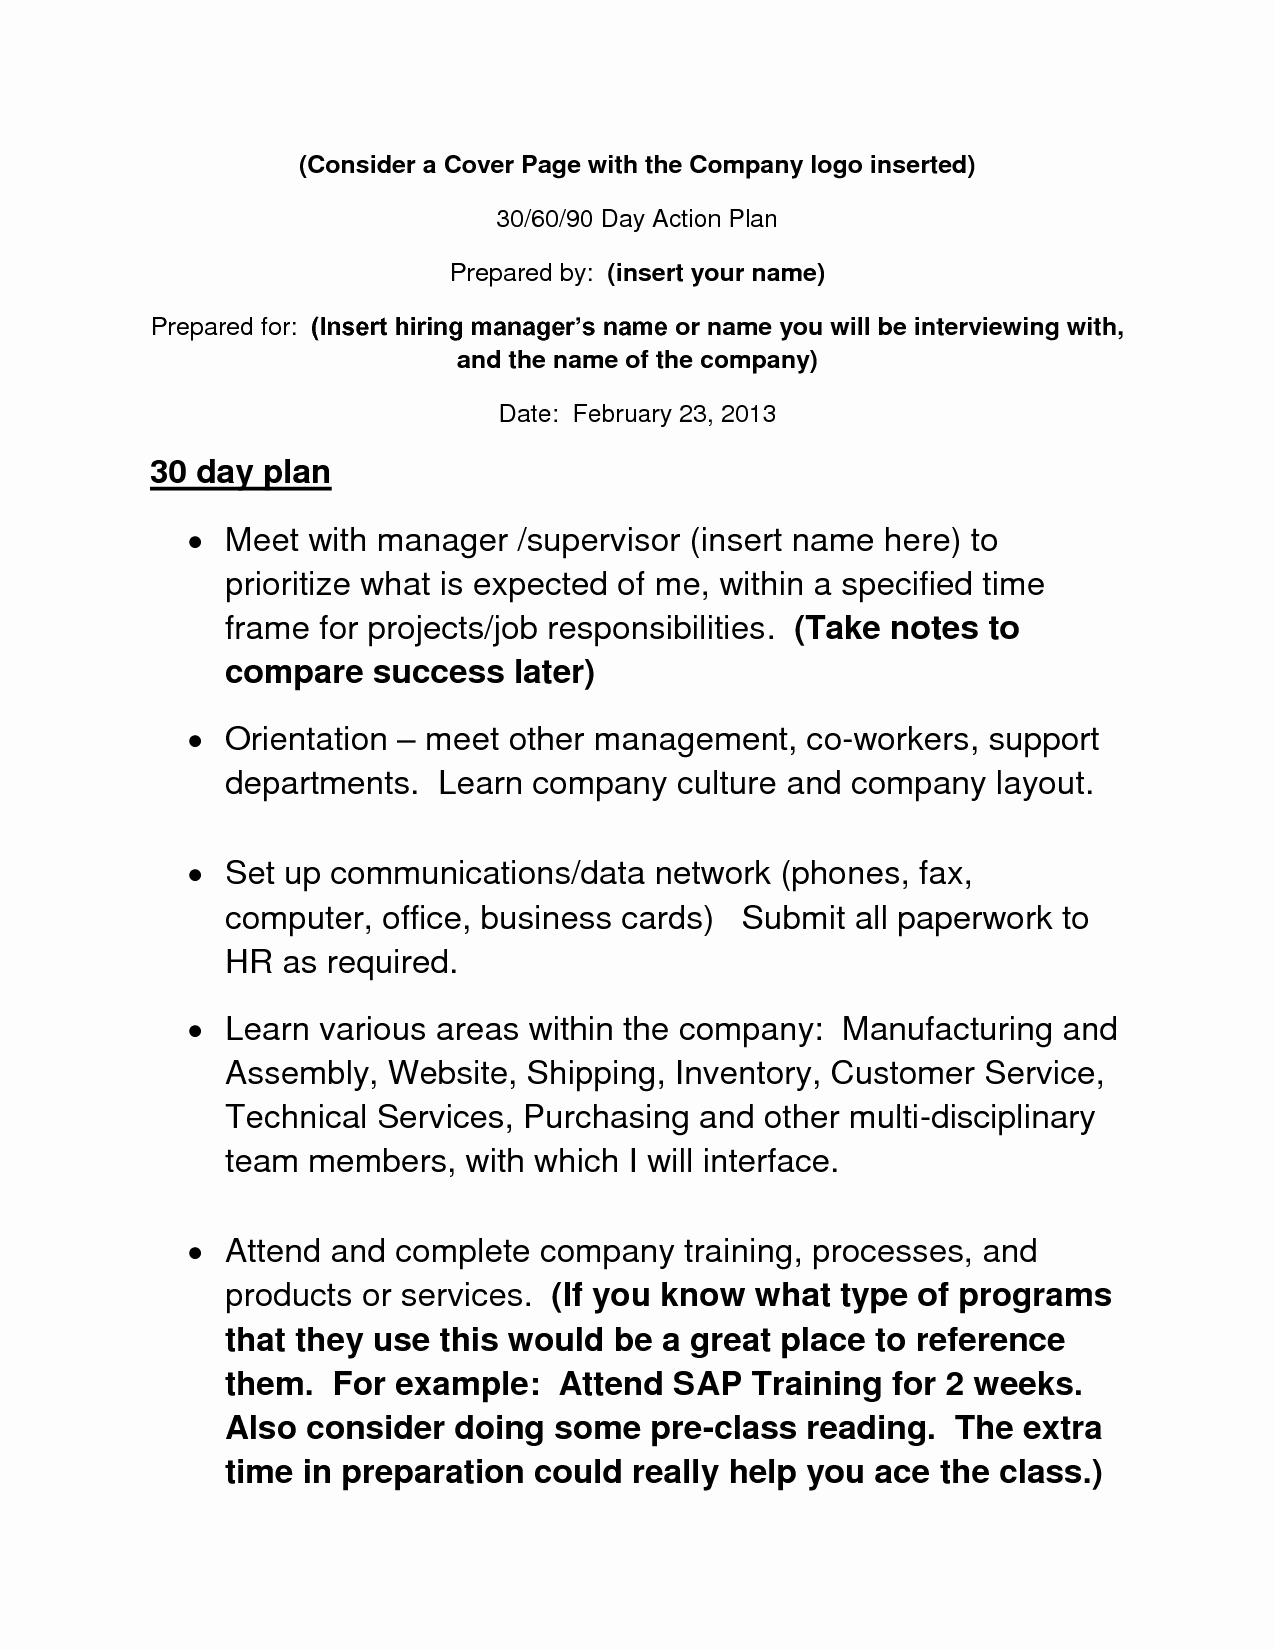 90 Day Business Plan Template Beautiful 30 60 90 Day Action Plan Template Info Pinterest